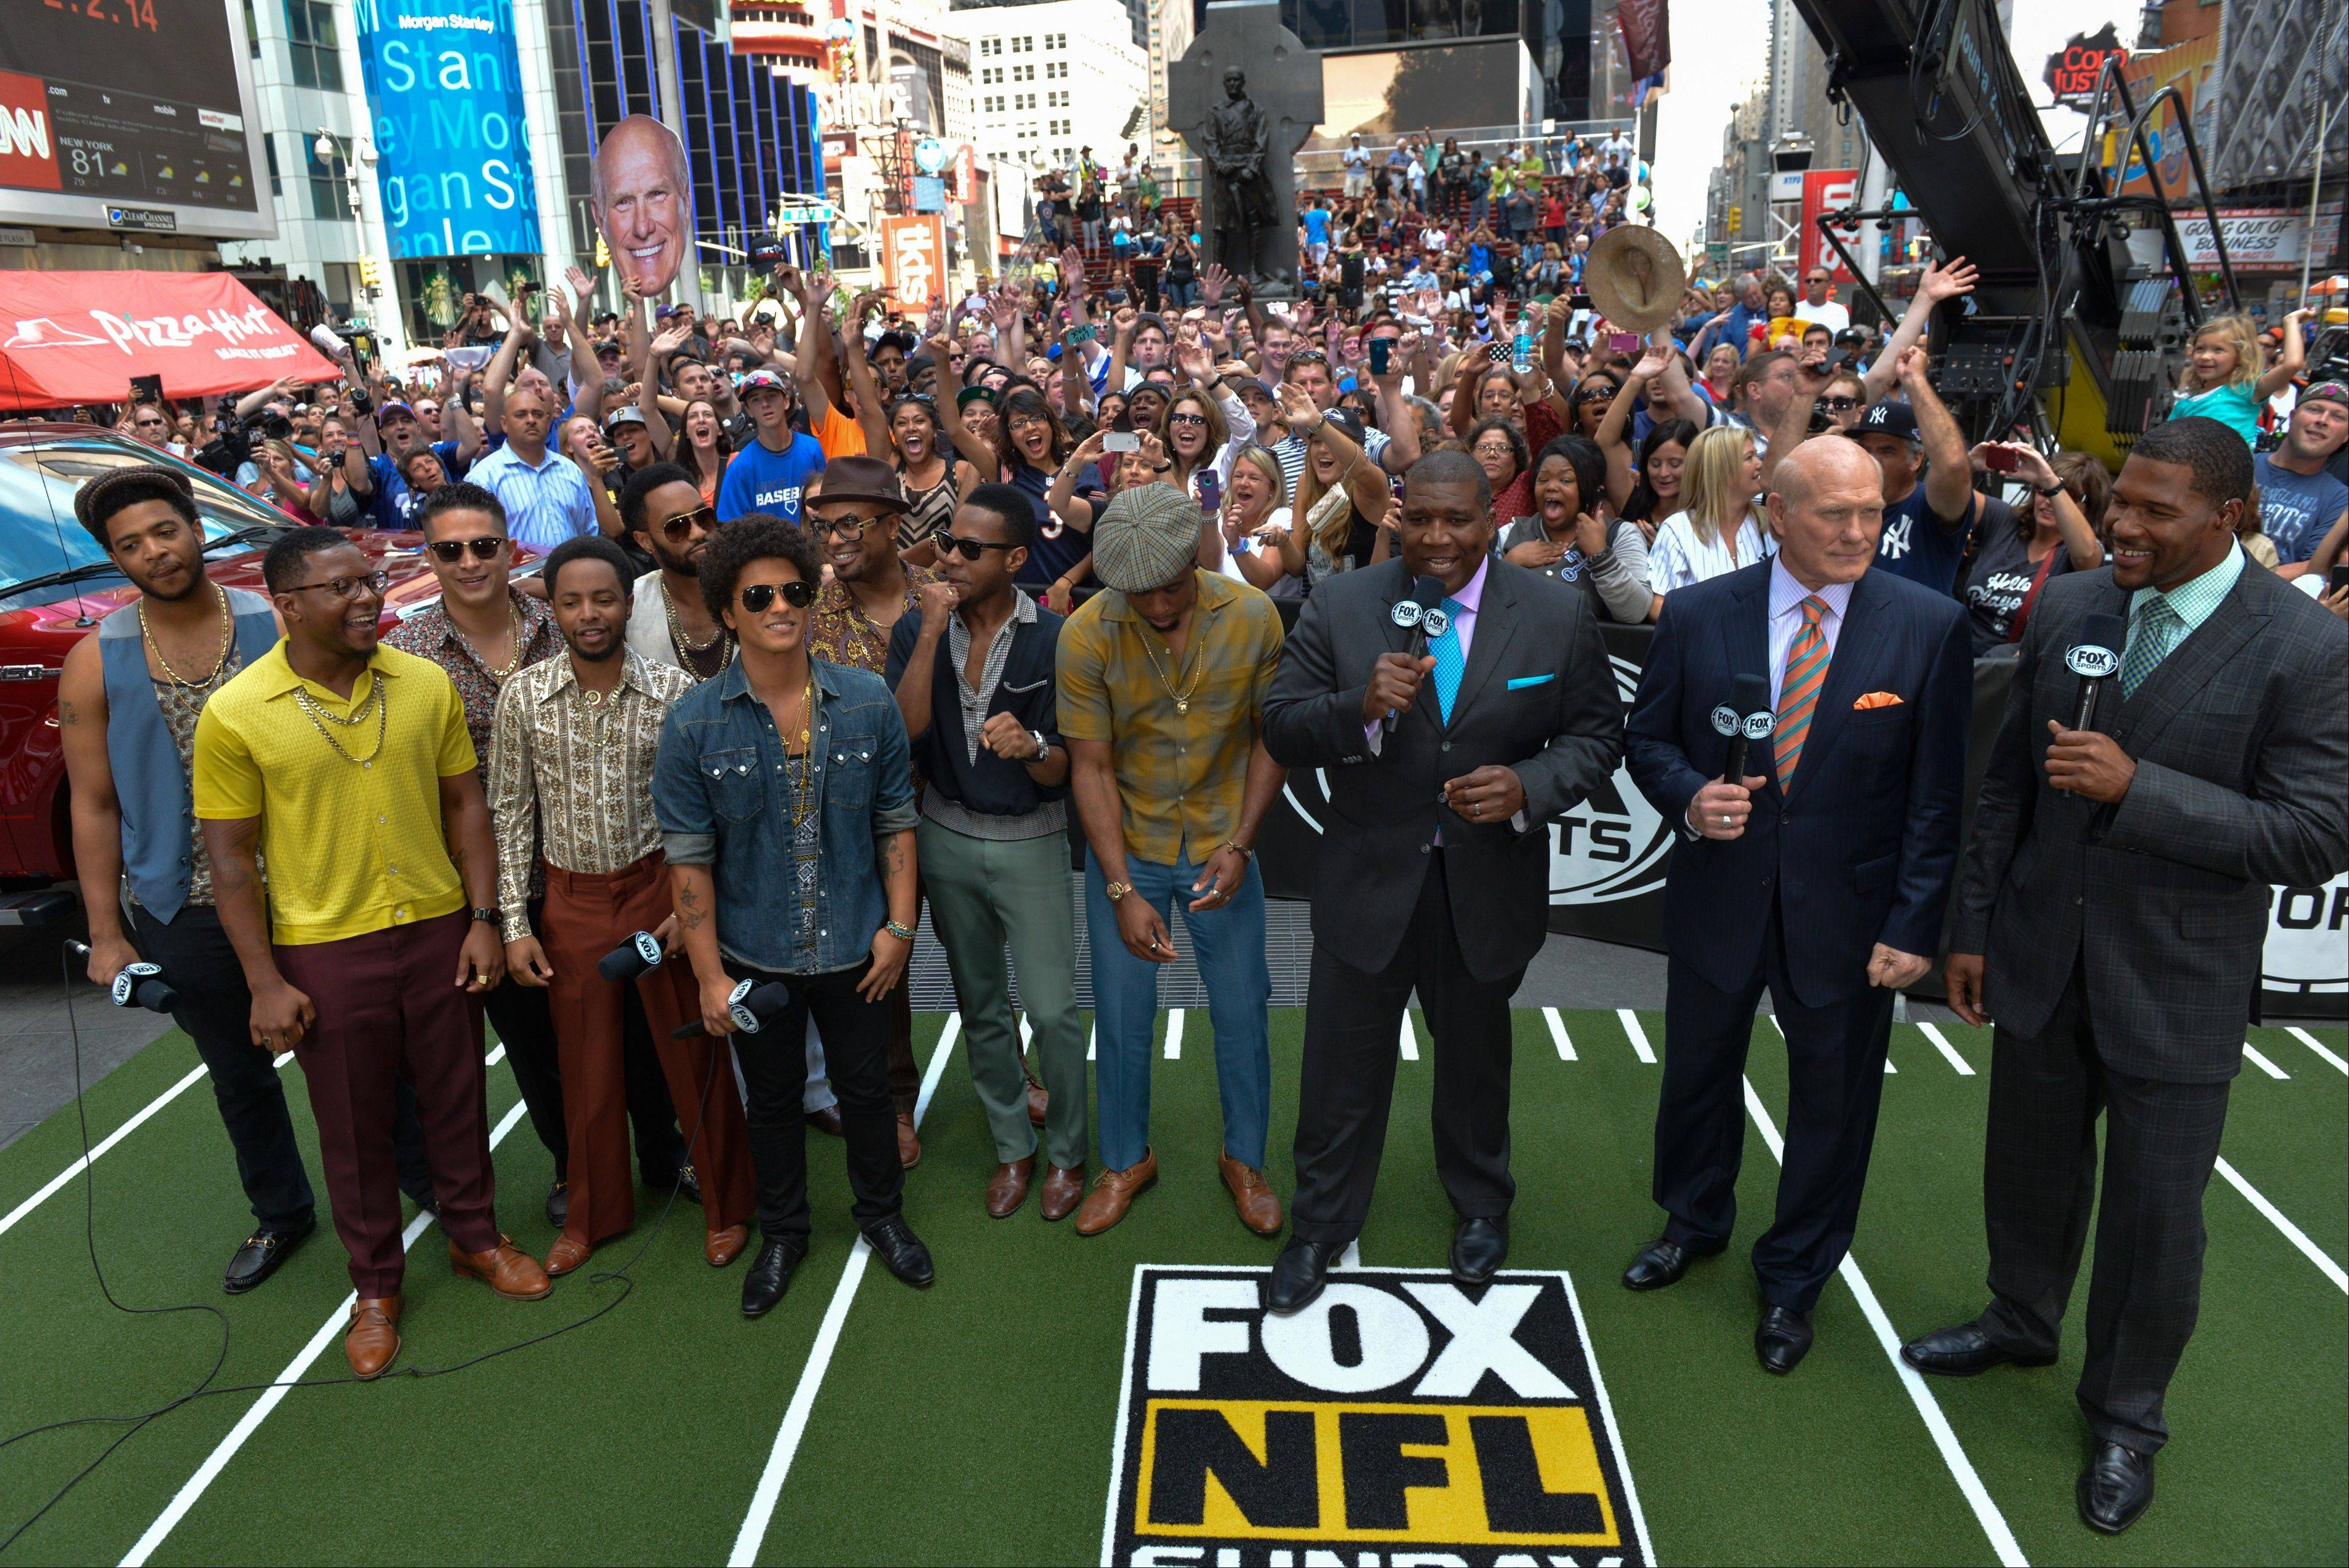 This image released by the NFL shows Bruno Mars, fifth from left, with Curt Menefee, from third right, Terry Bradshaw and Michael Strahan in Times Square after it was announced Sunday, Sept. 8, 2013, on 'Fox NFL Sunday' that he will play during the Pepsi Super Bowl XLVIII Halftime Show at MetLife Stadium in East Rutherford, N.J. on Feb. 2, 2014.